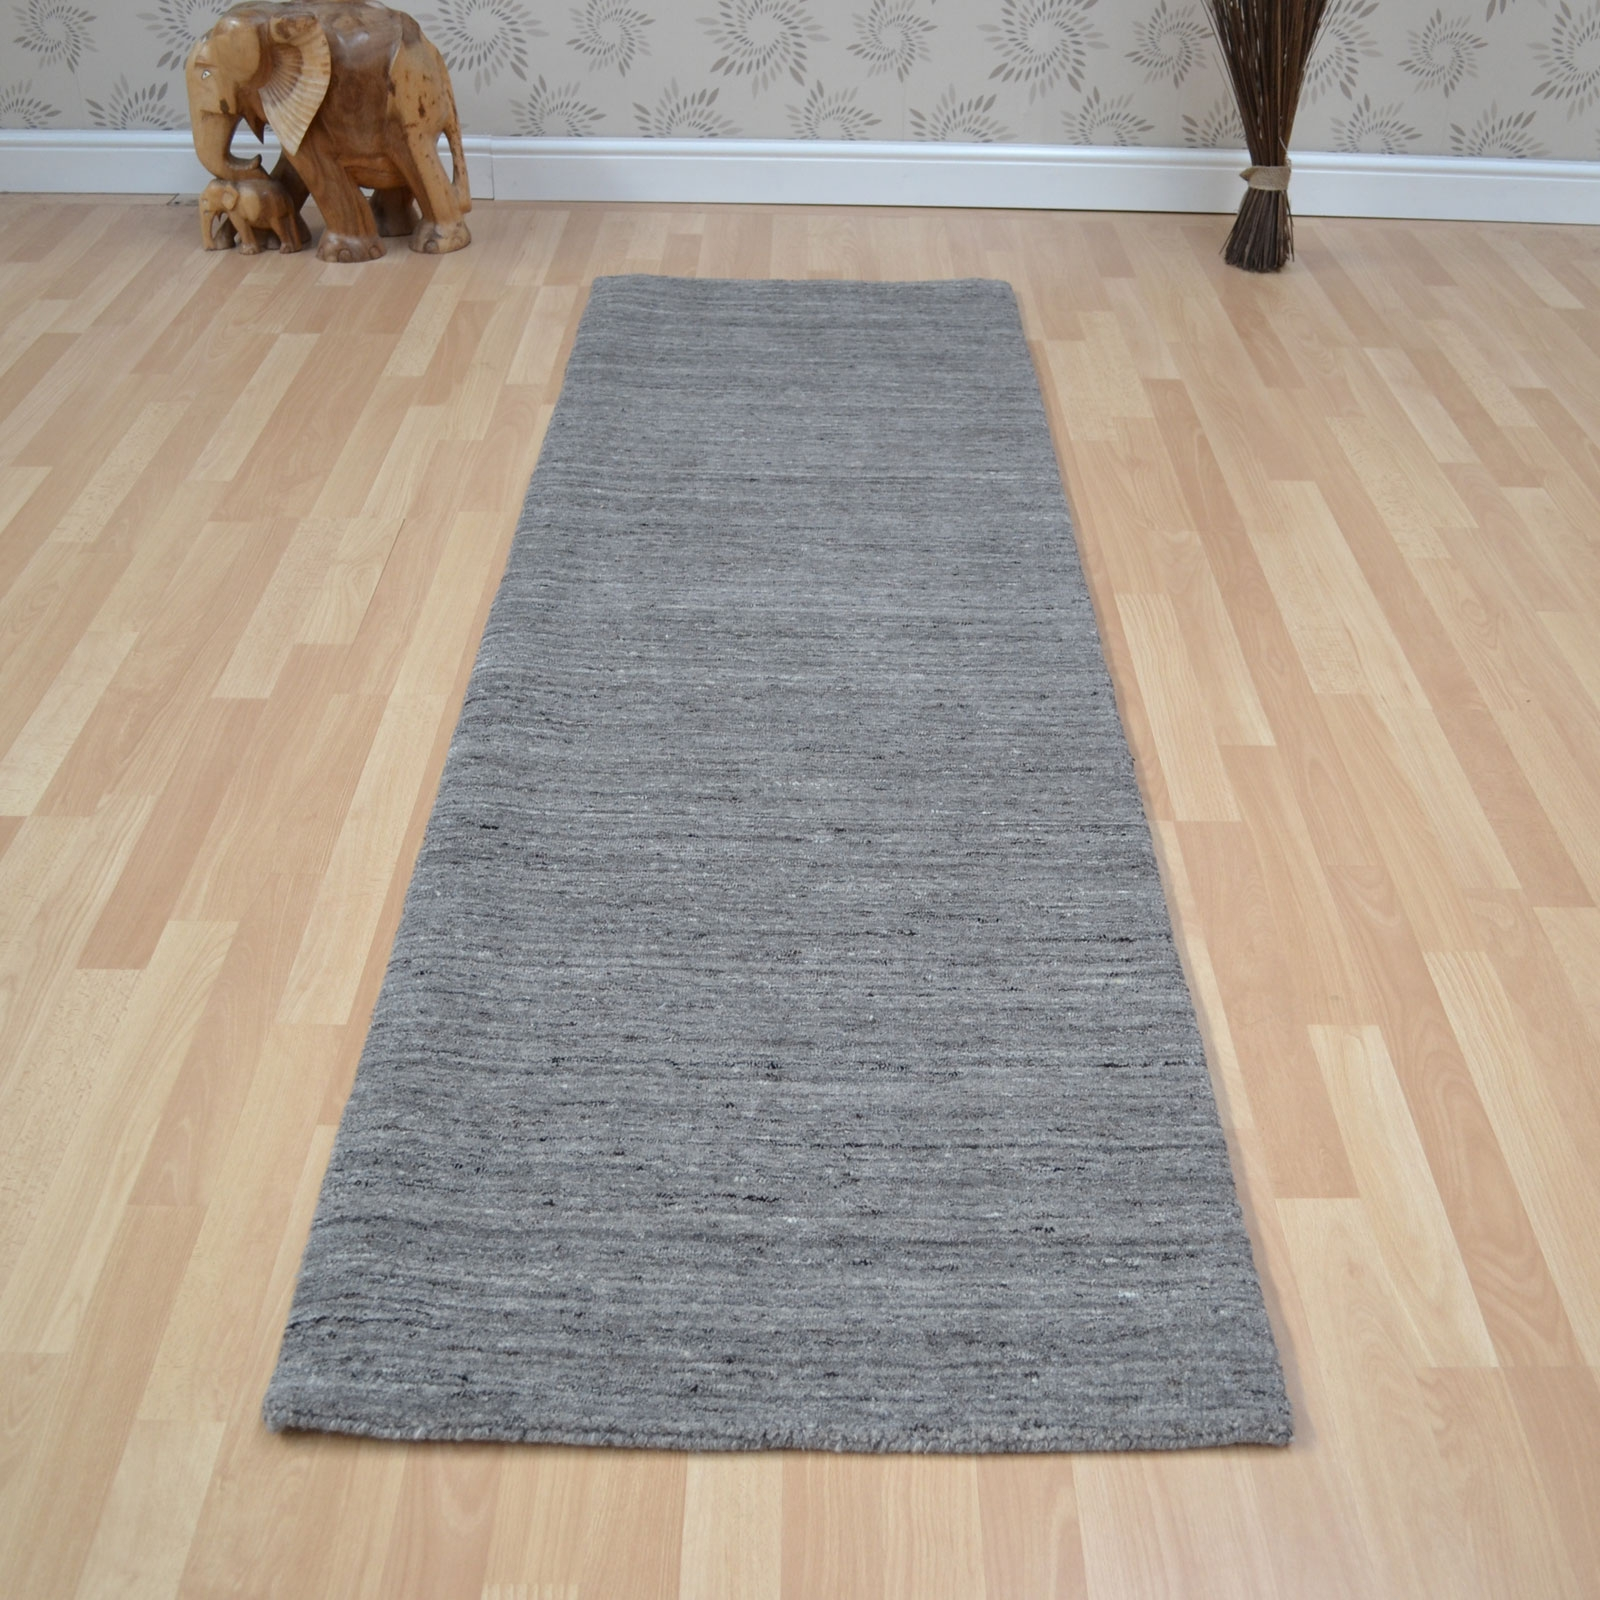 Hallway Runners Find The Best Hall Rug For Your Home With Regard To Hallway Runners Black And Grey (#16 of 20)